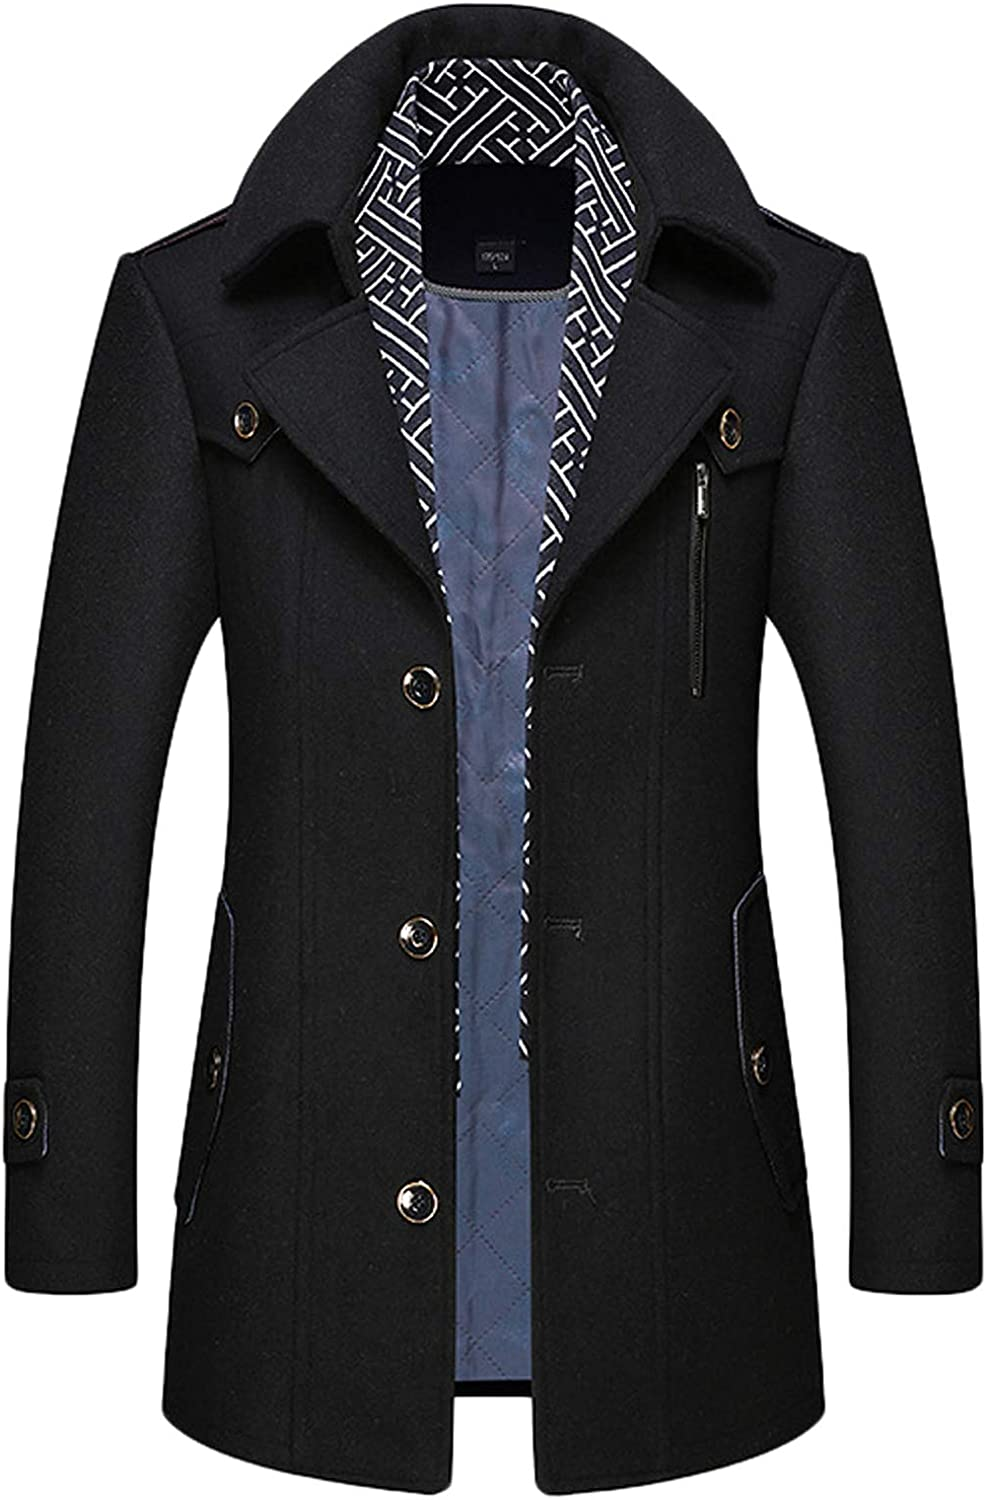 Youhan Men's Scarf Thick Winter Jacket Wool Blend Pea Coat